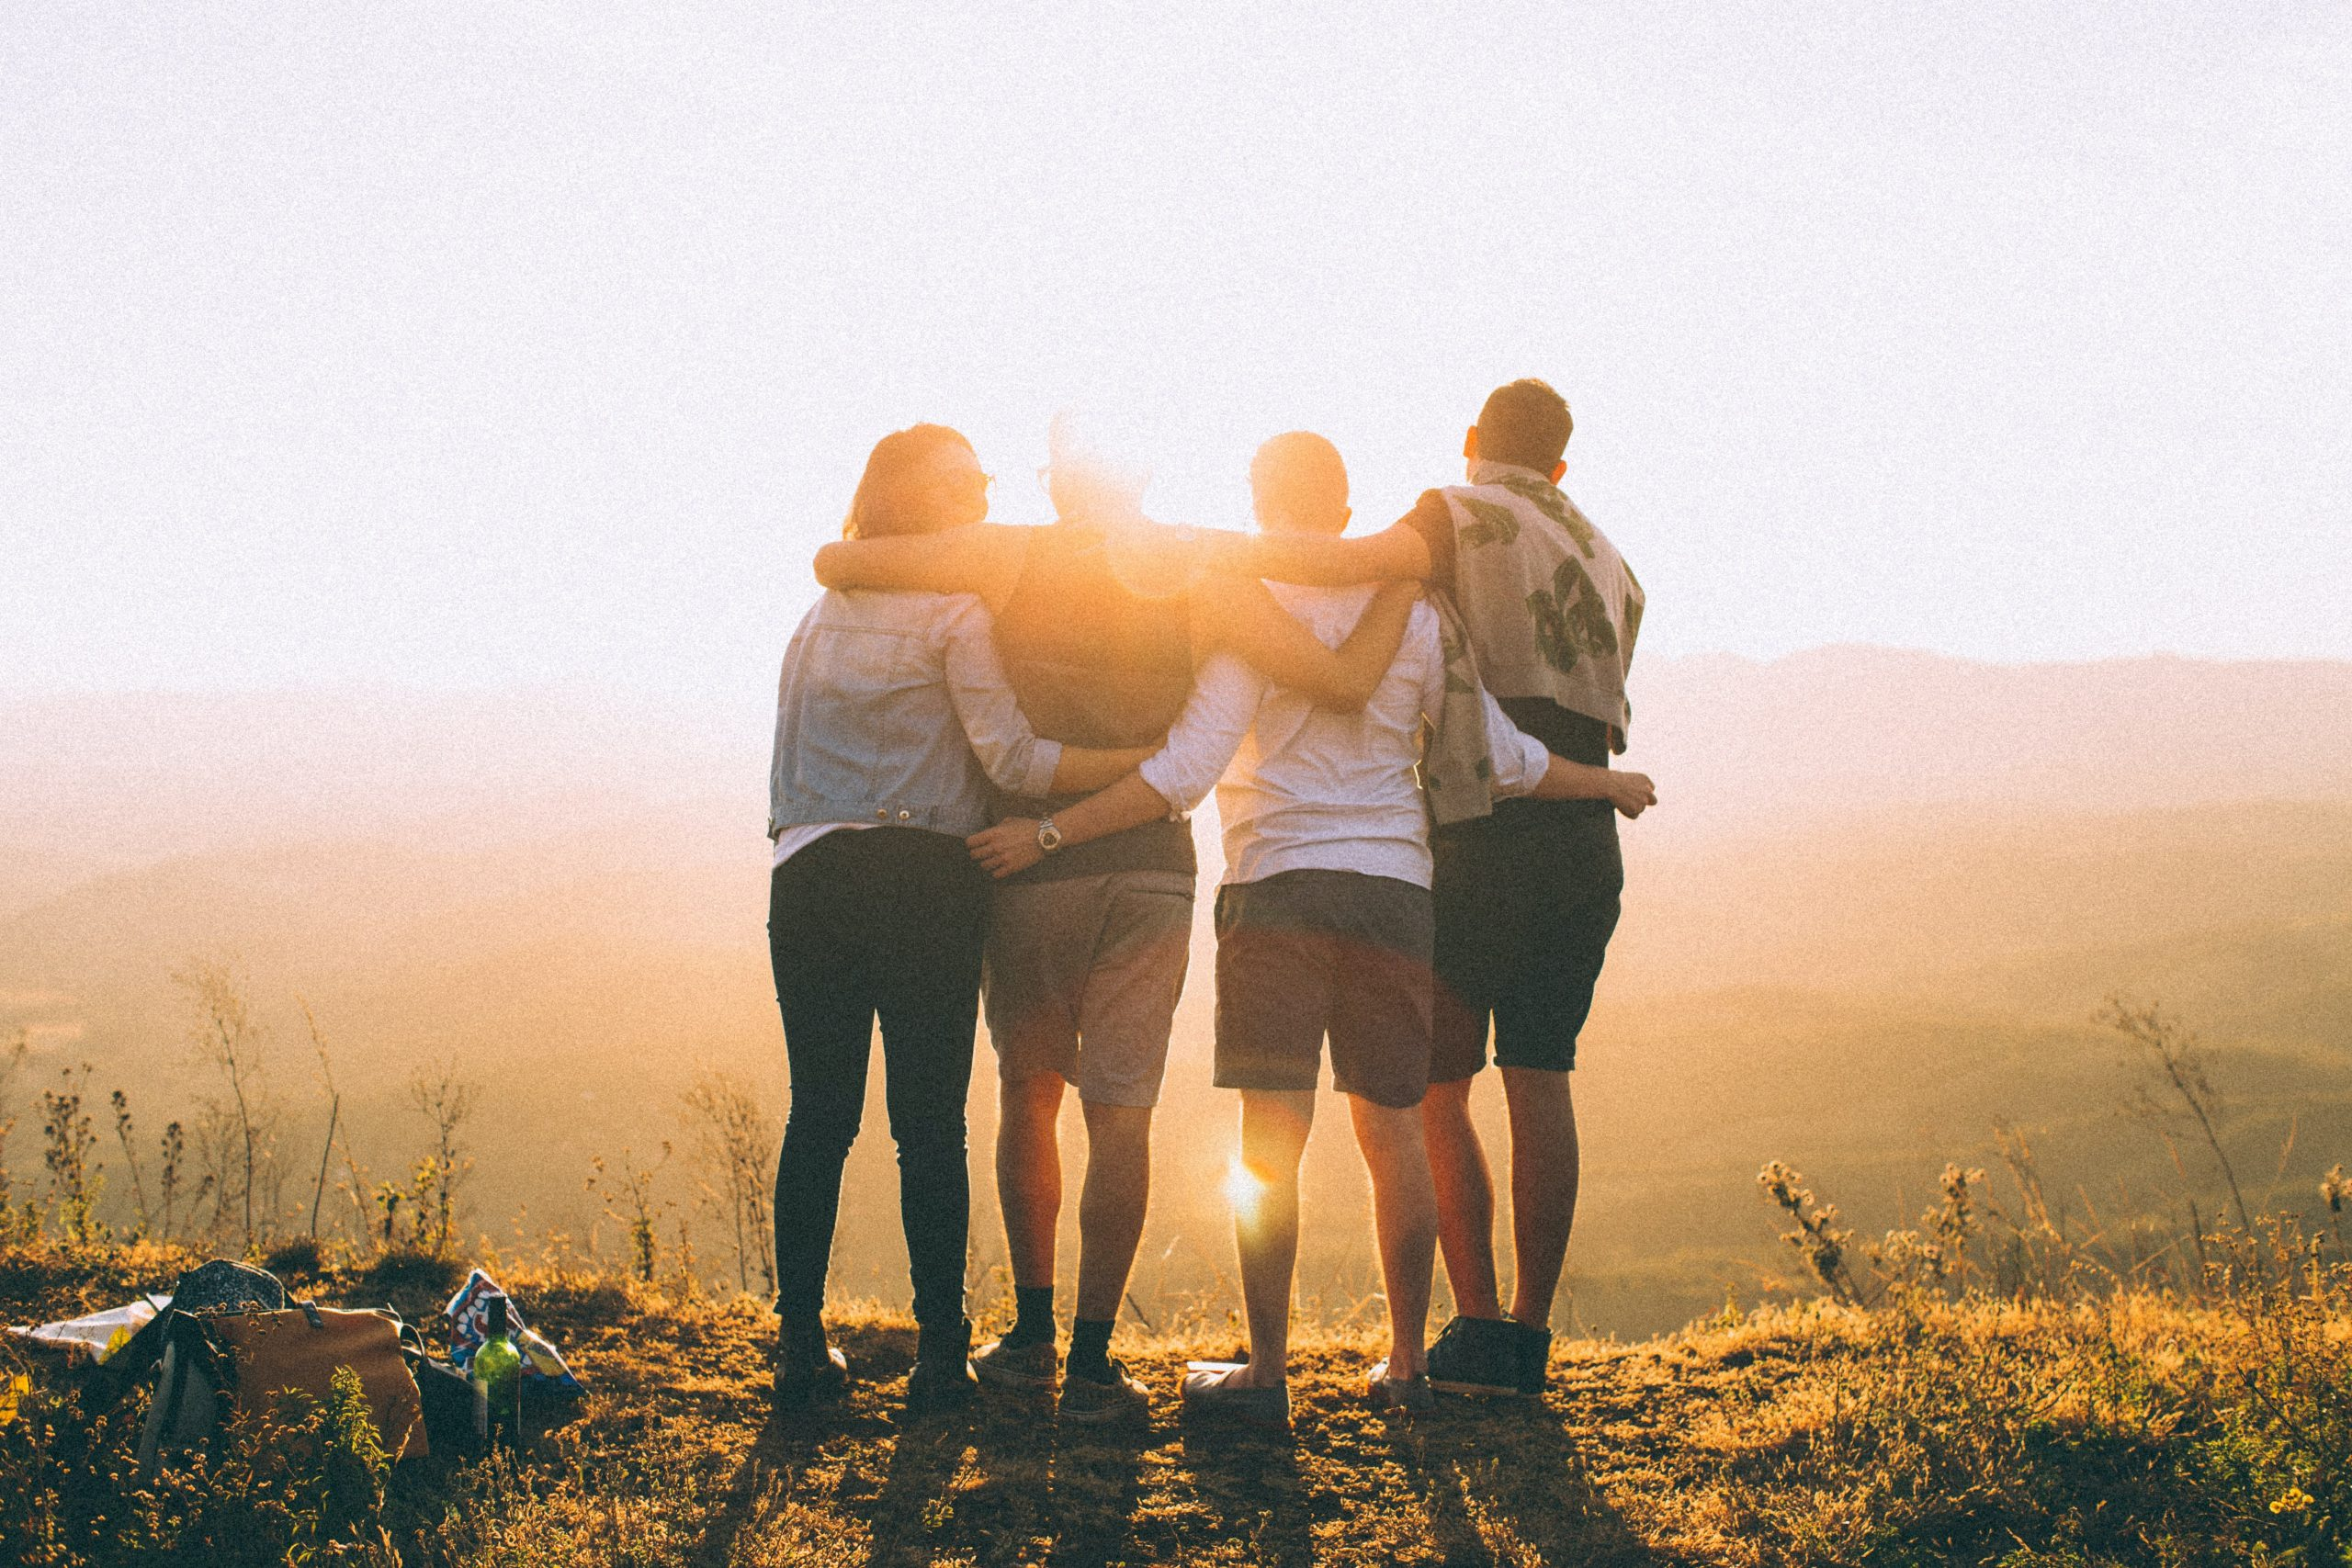 Image of the back of a group of four people with their arms around each other at sunset.